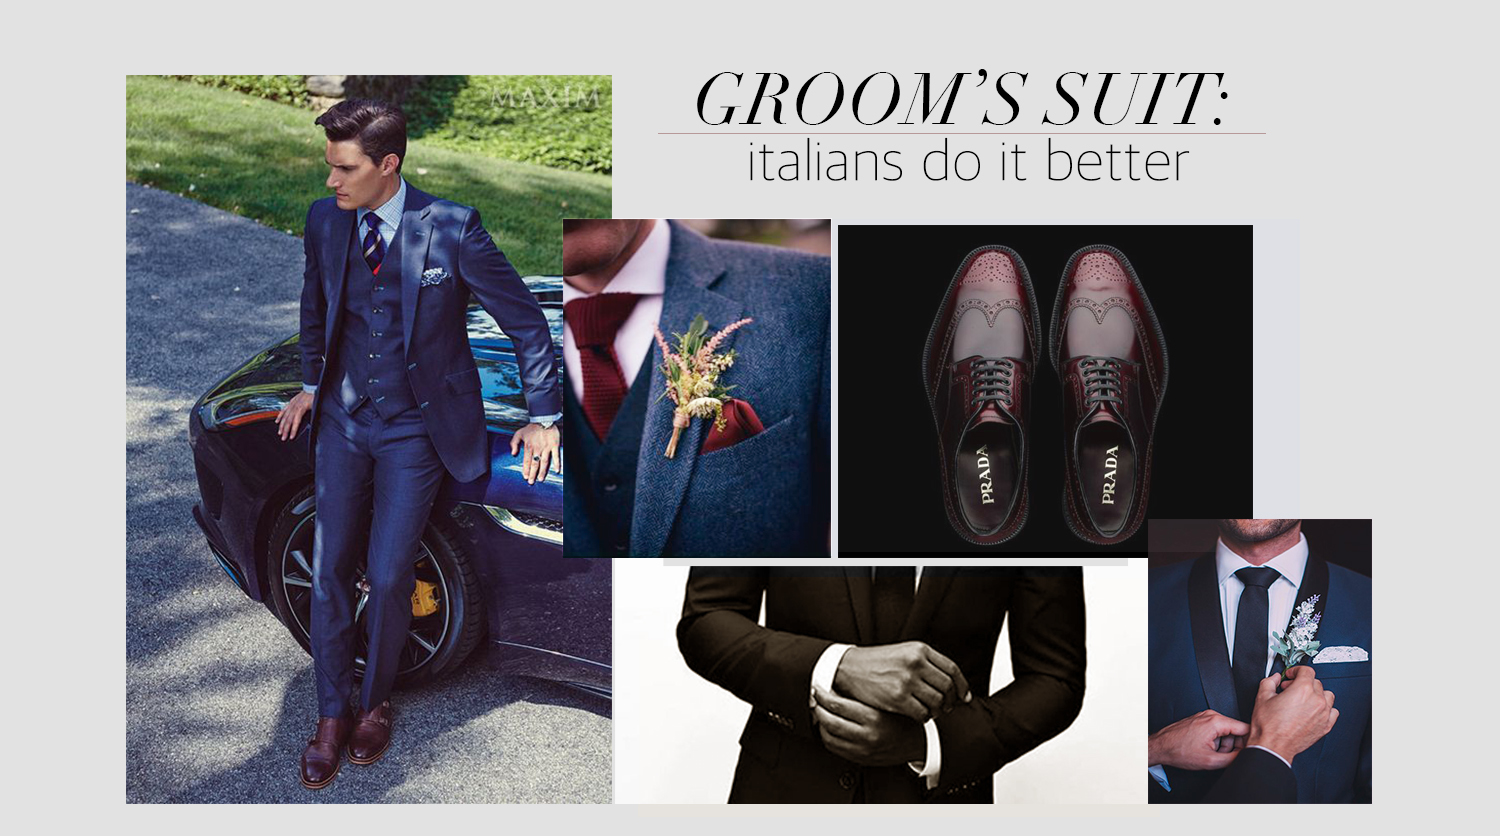 Wedding suit: how grooms do it in Italy?